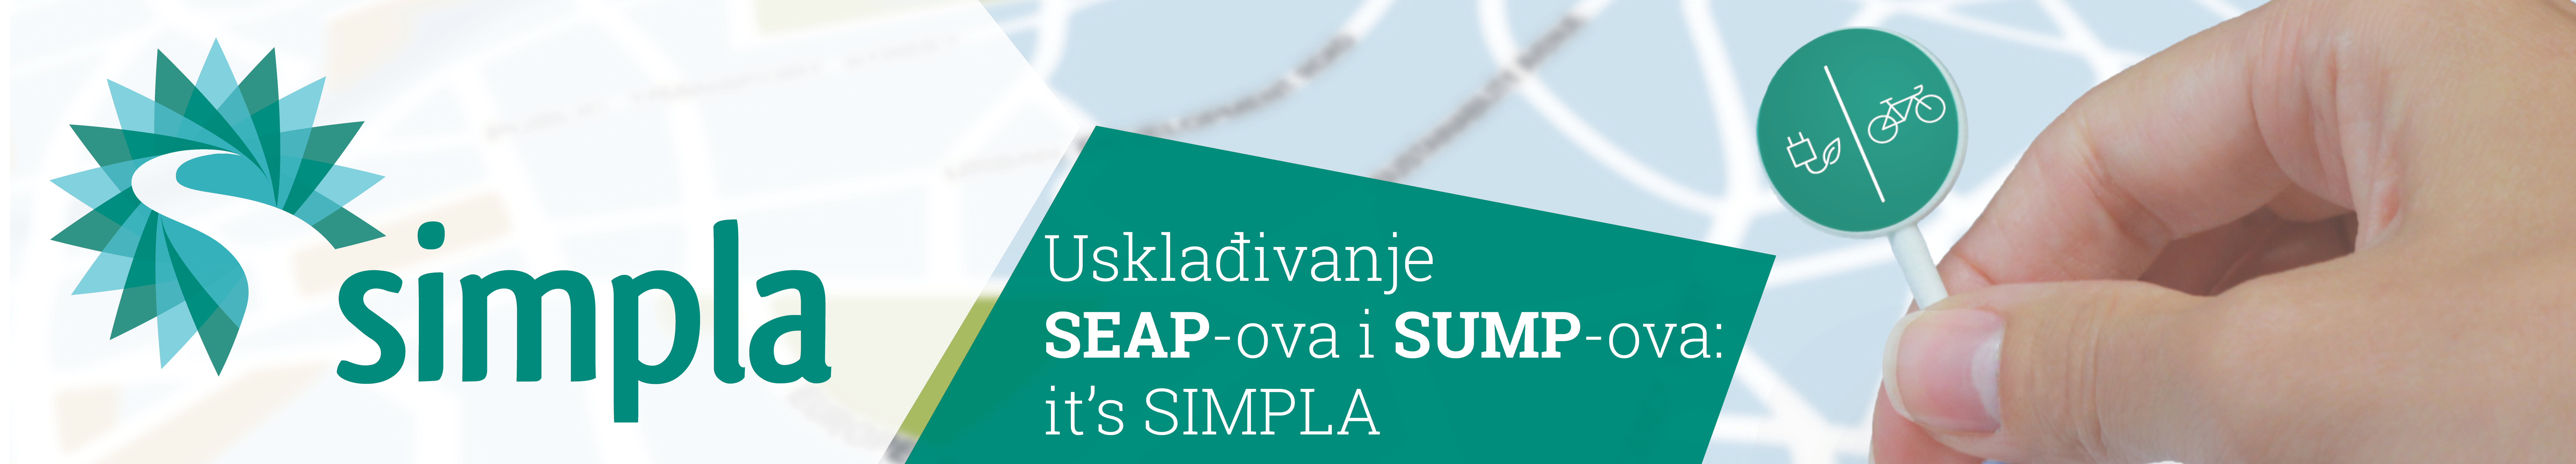 SEAP & SUMP: it's SIMPLA